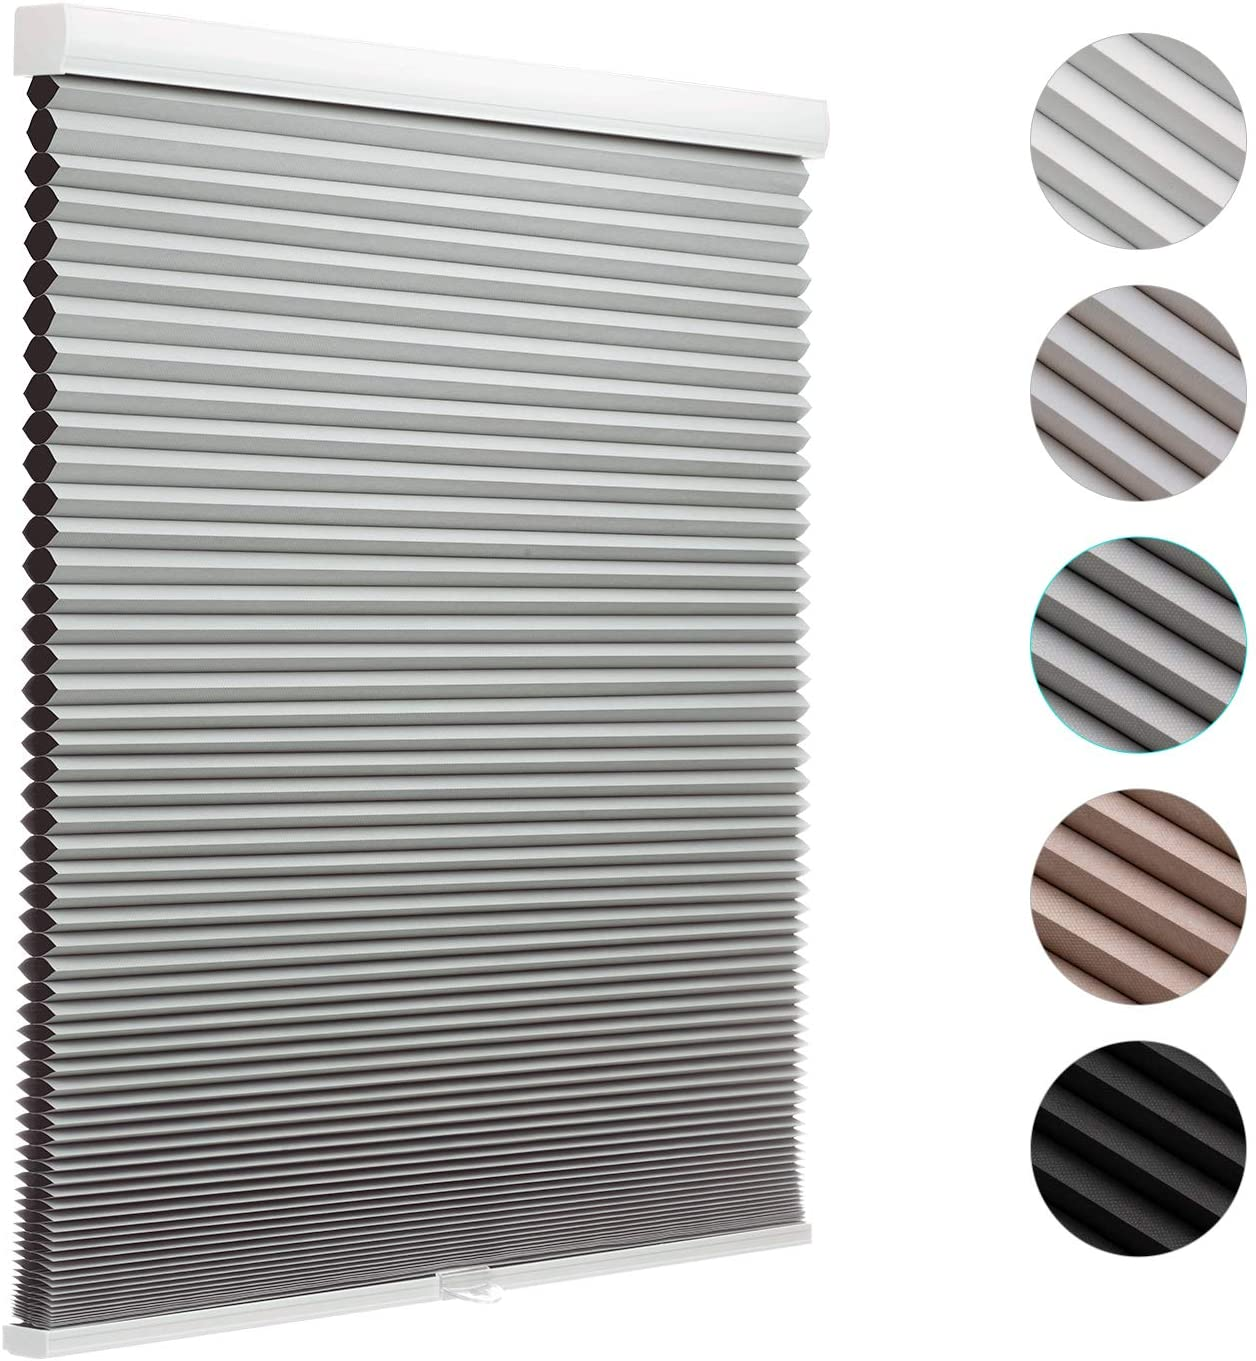 MYshade Cordless Special sale item Cellular Windows Shades for Blinds Blackout Win Columbus Mall